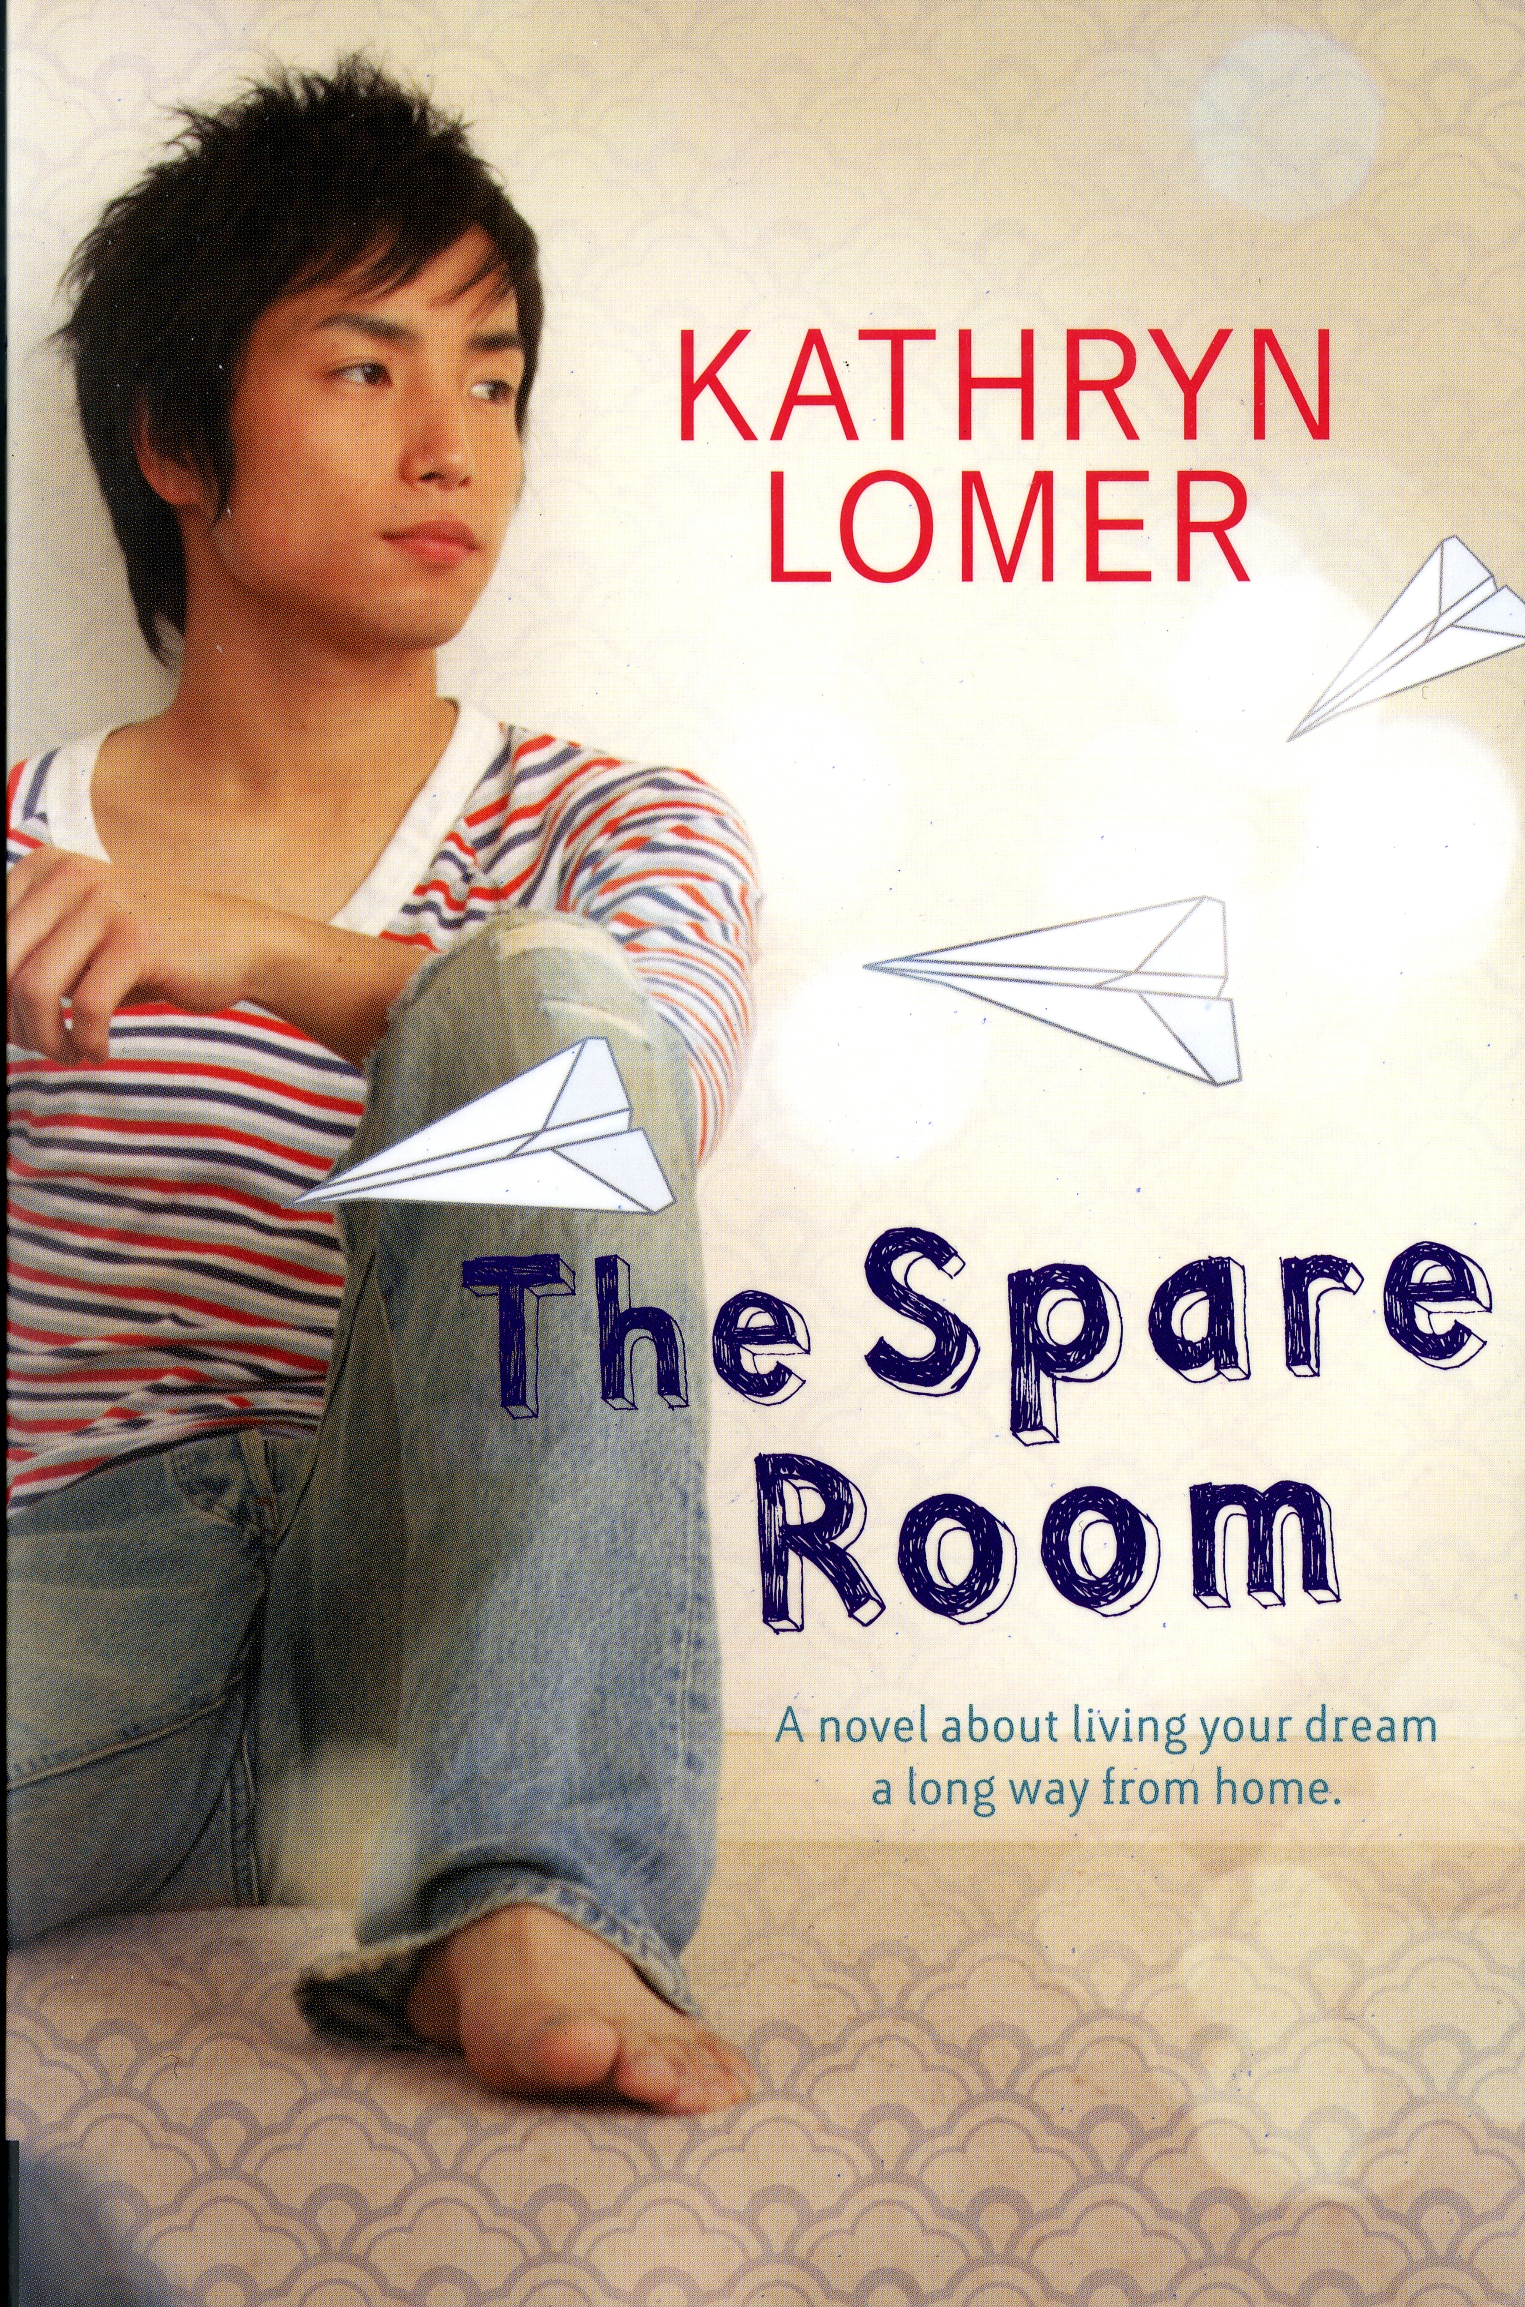 The Spare Room by Kathryn Lomer - Penguin Books Australia